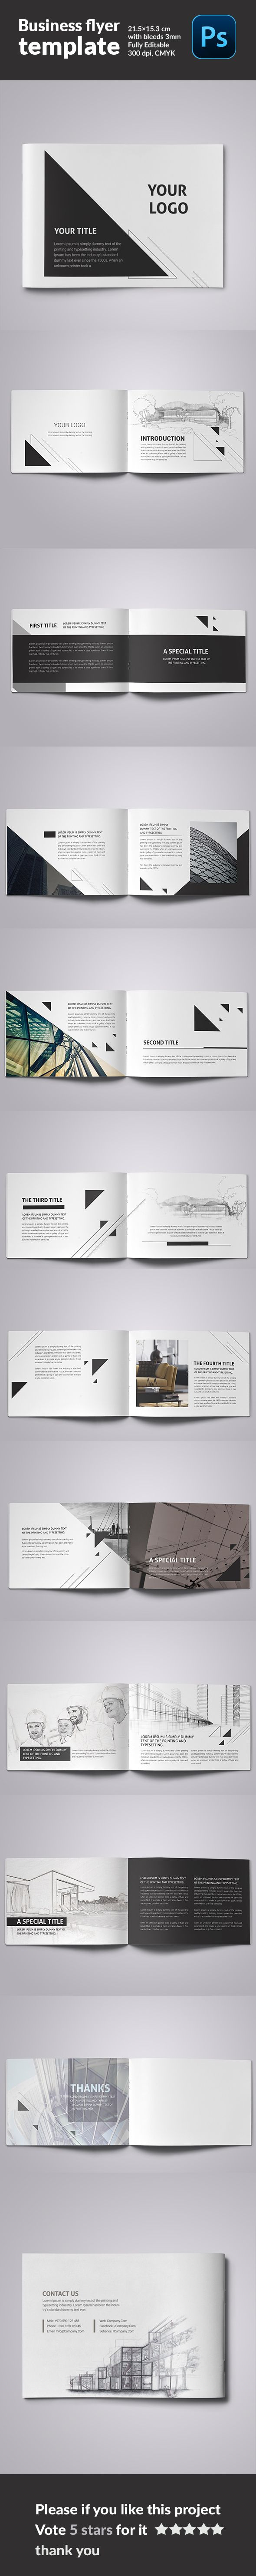 Minimal Architecture Brochure_F&B